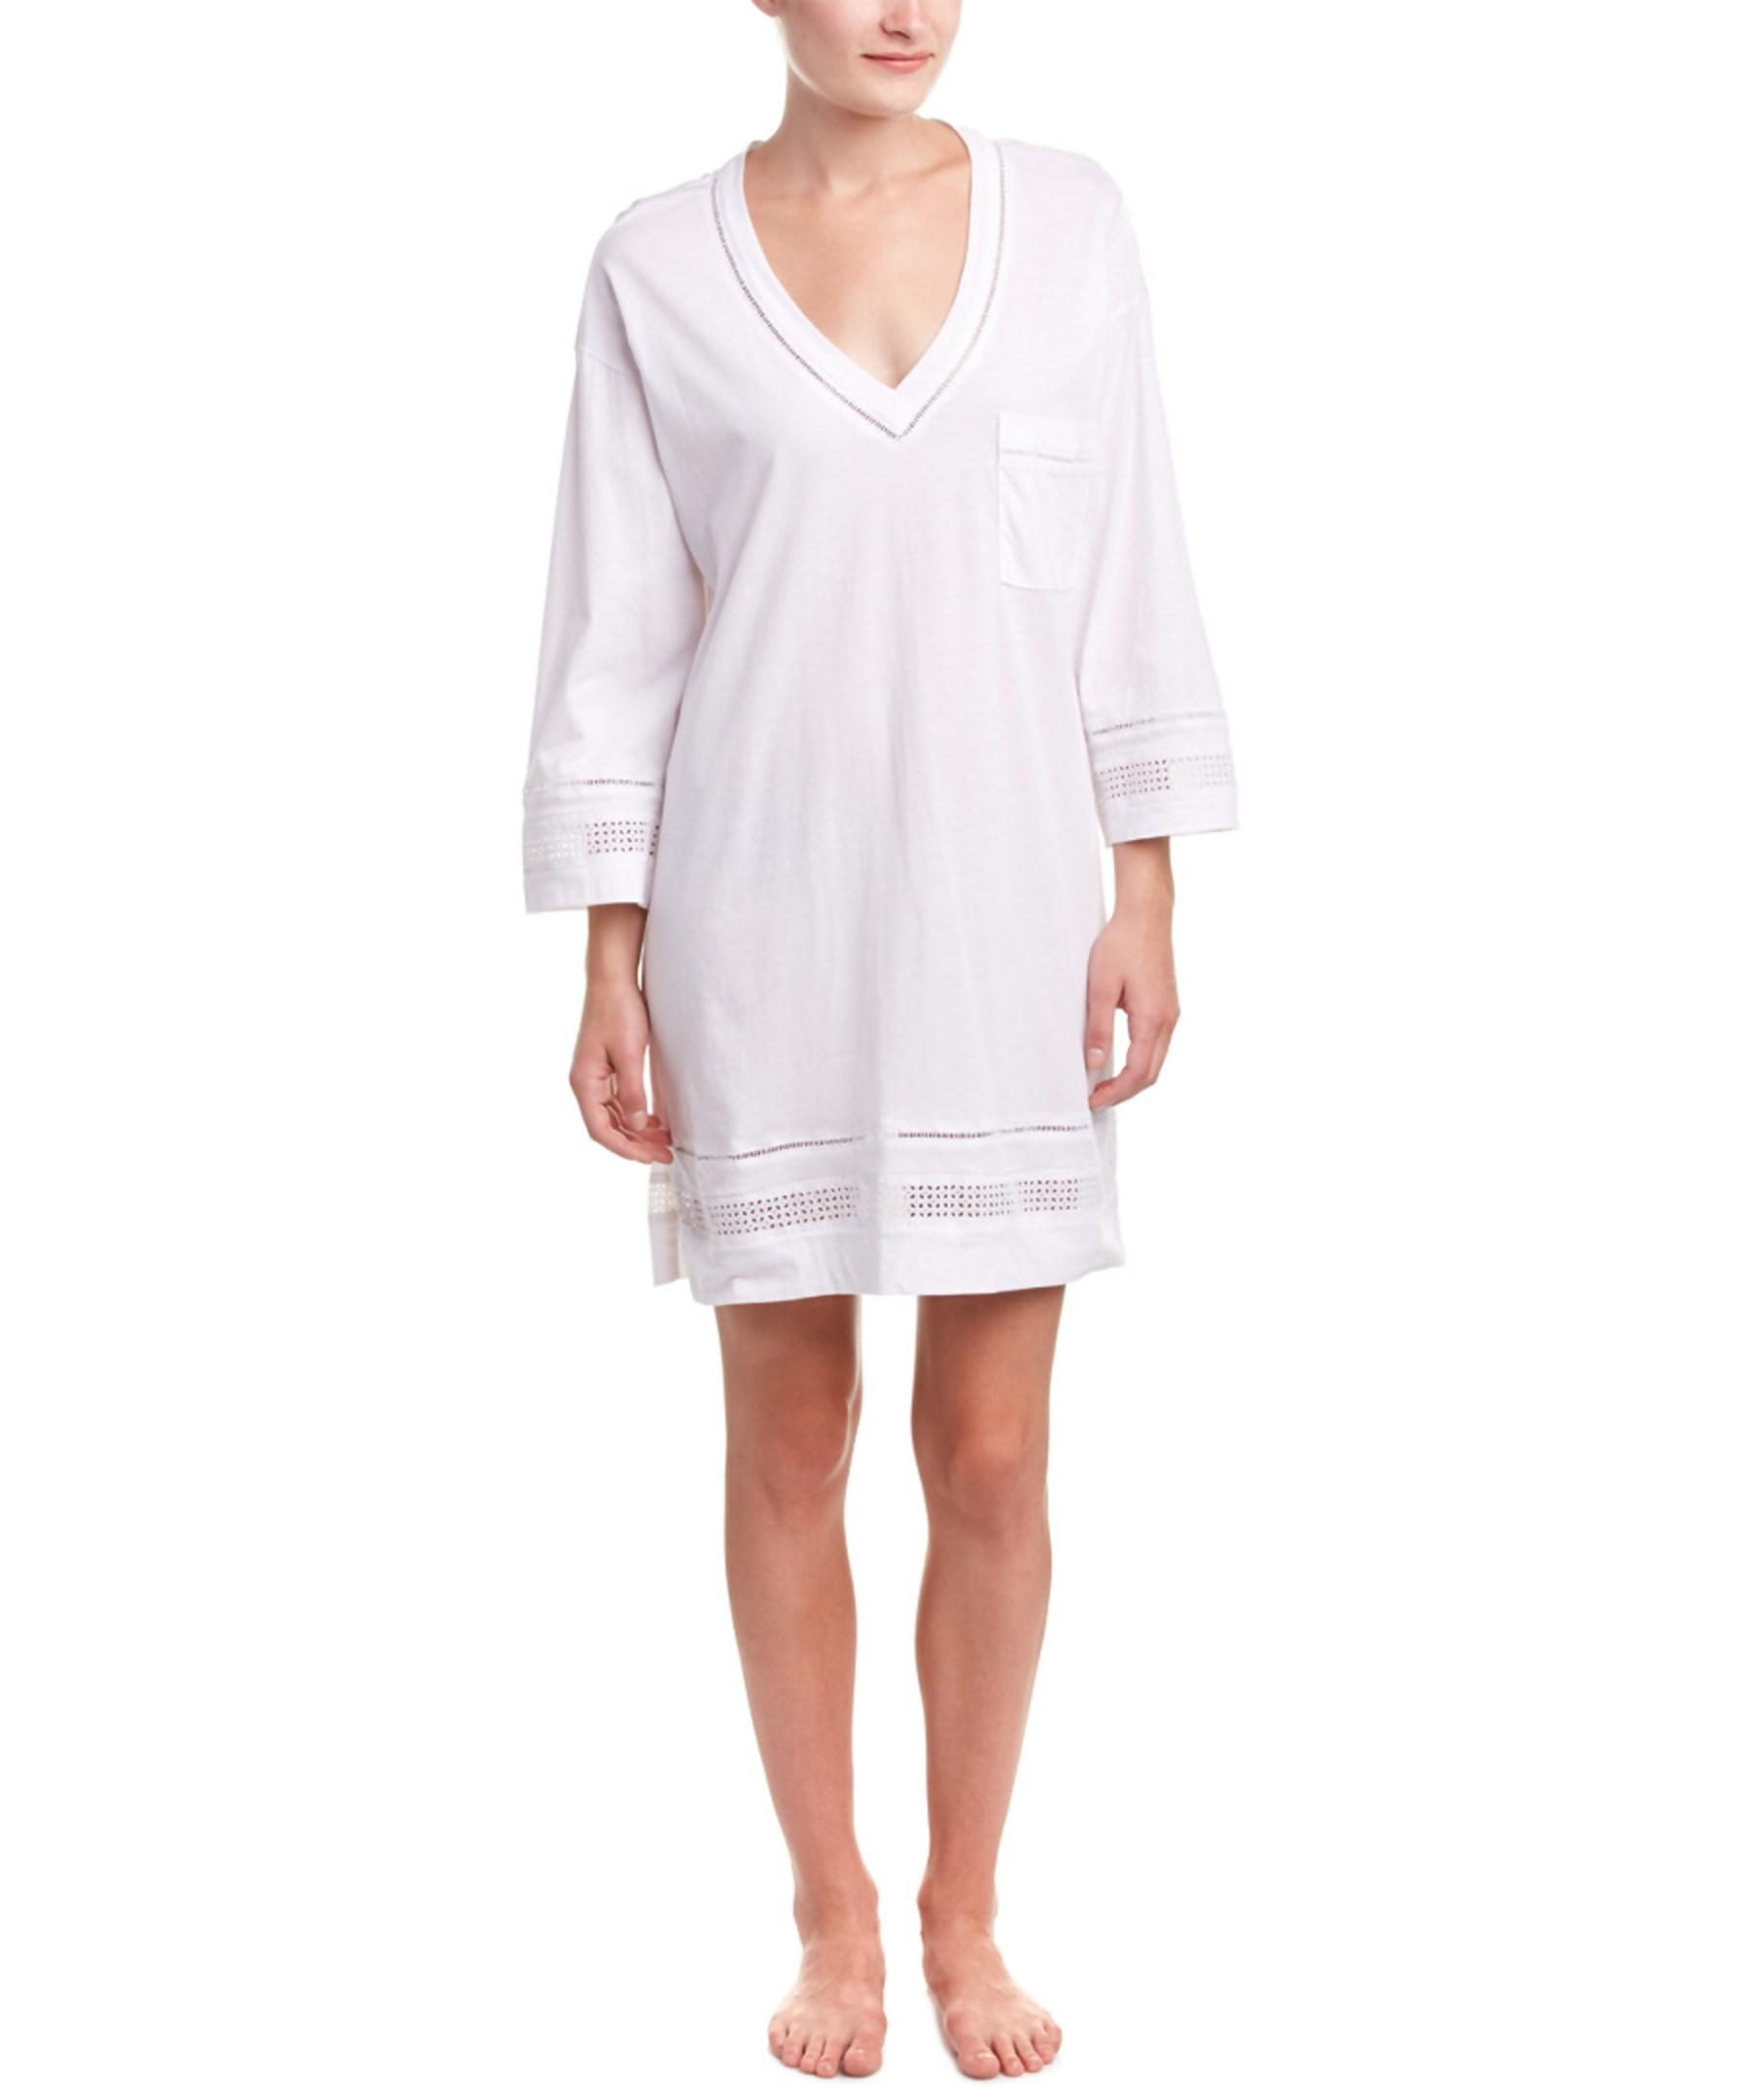 oscar de la renta signature sleep shirt in white lyst